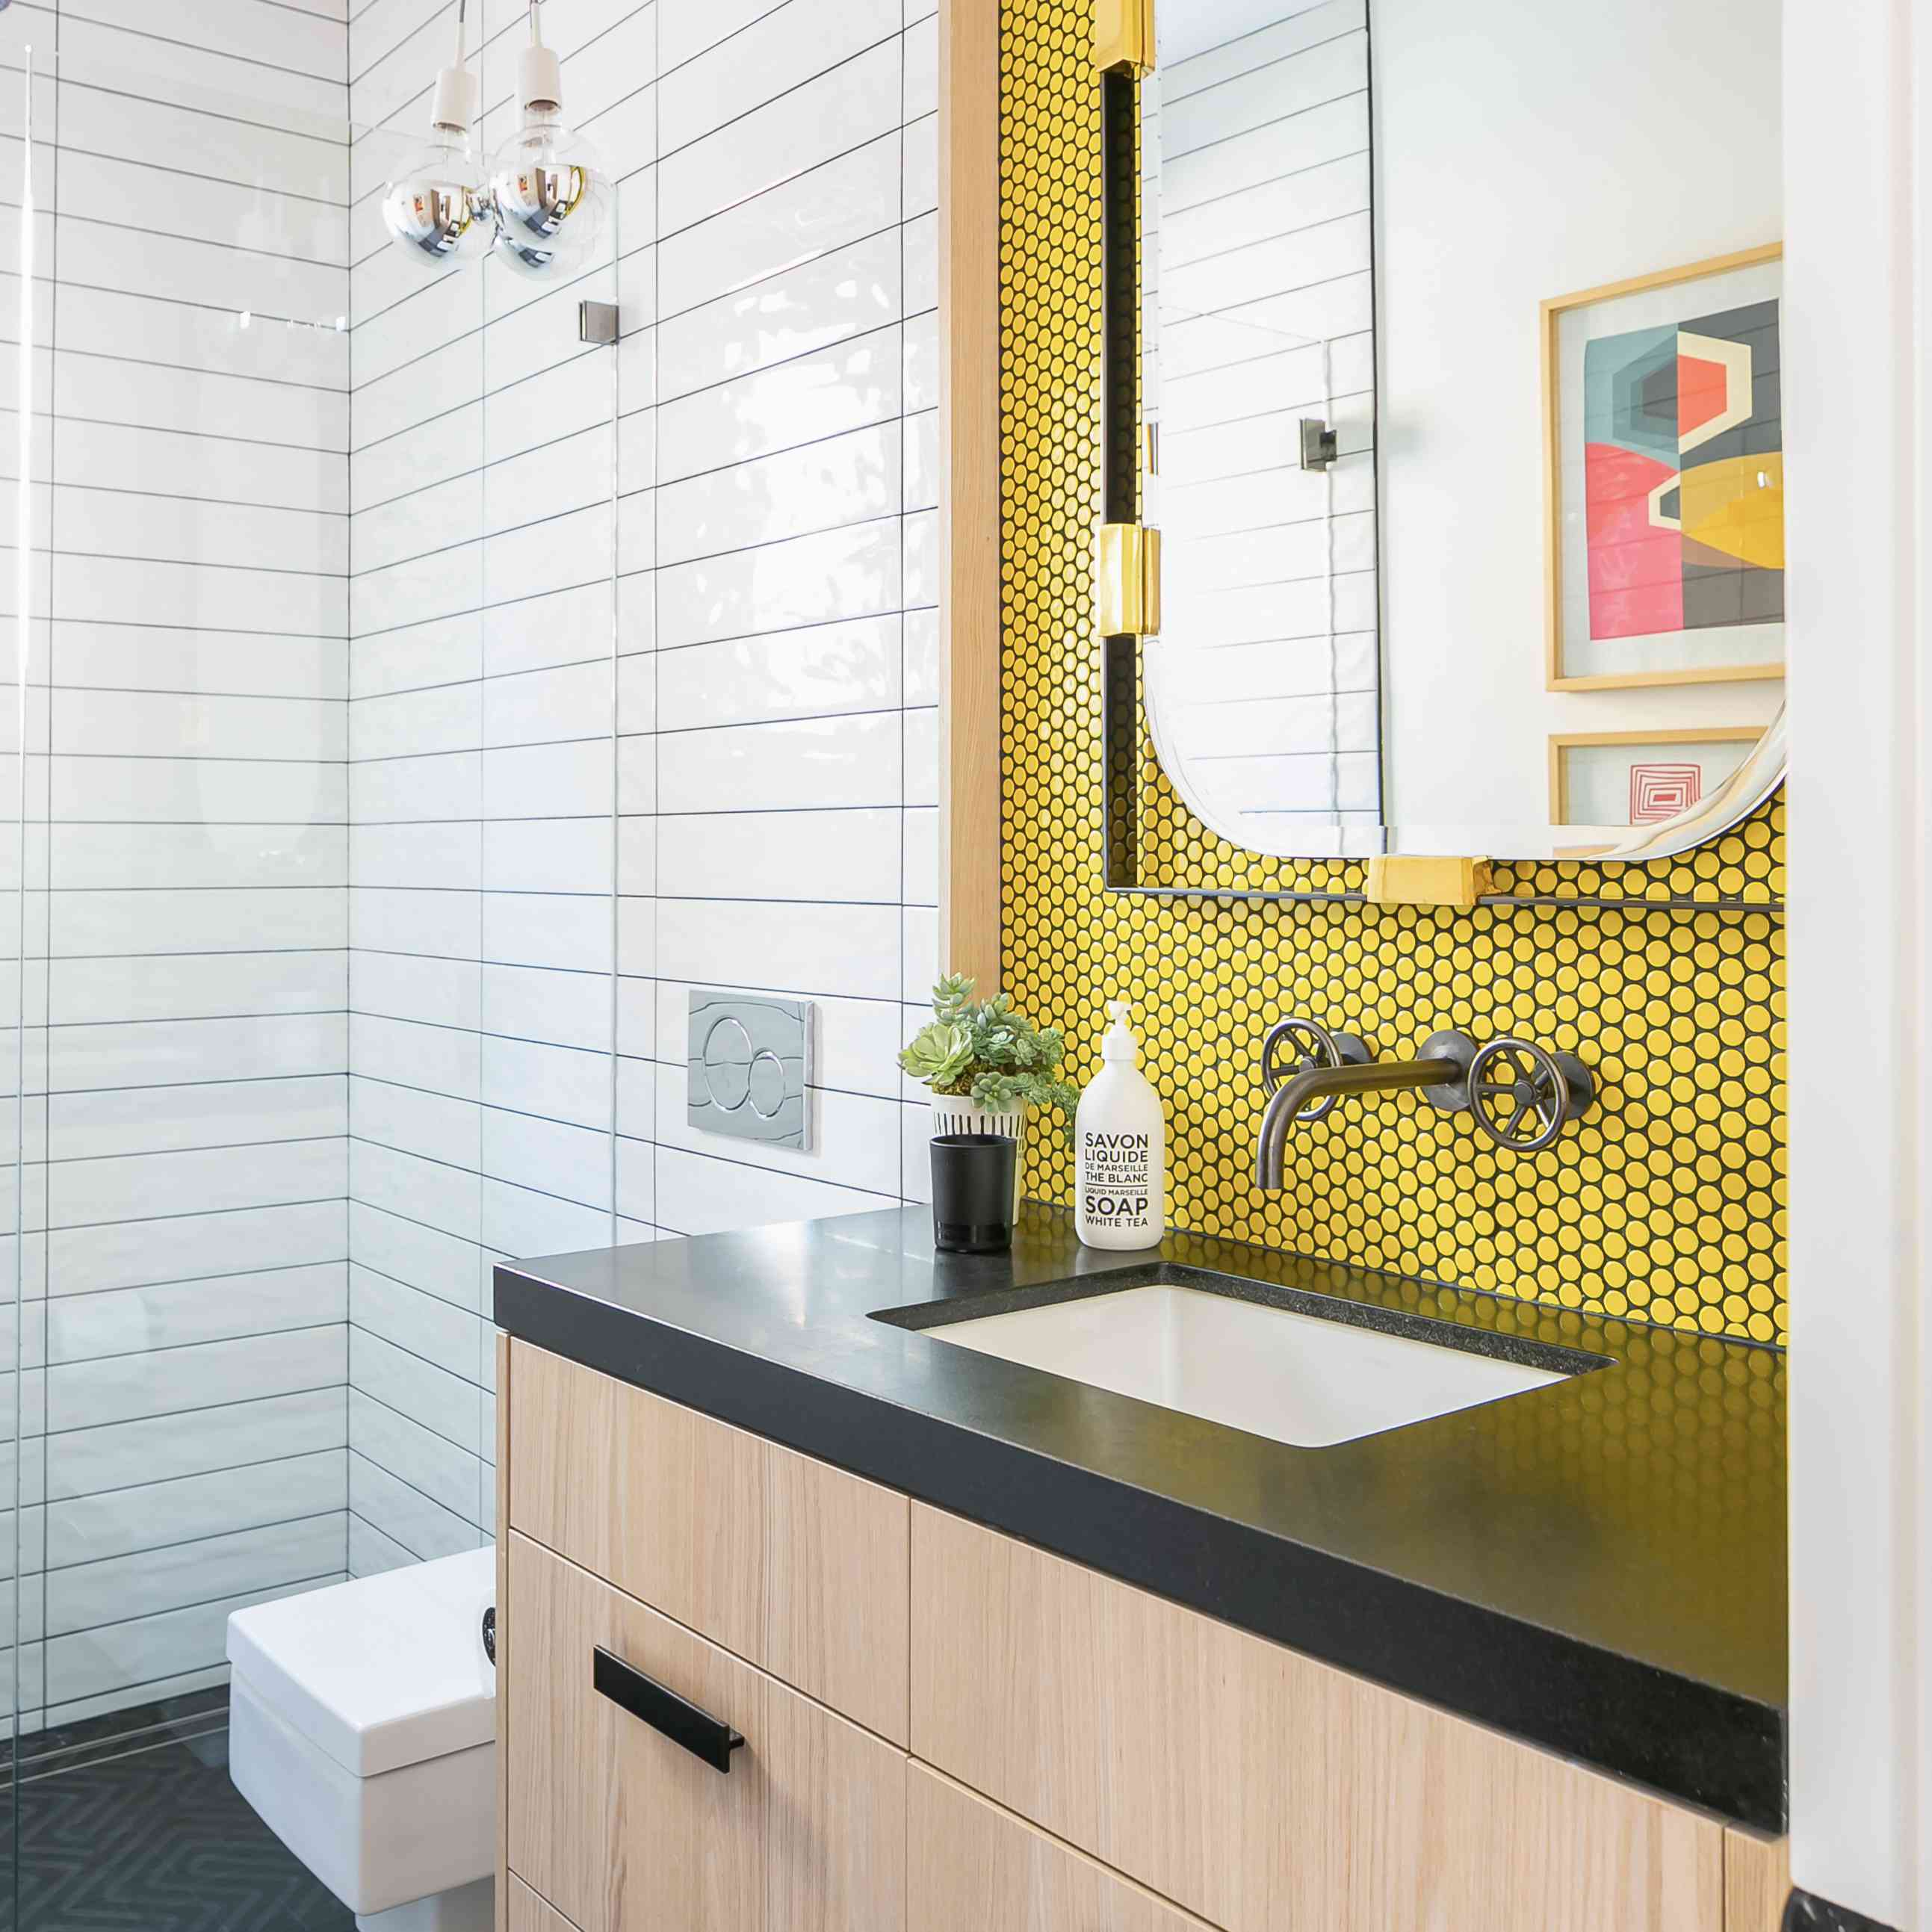 19 Bathroom Remodel Ideas For Your Next Home Project